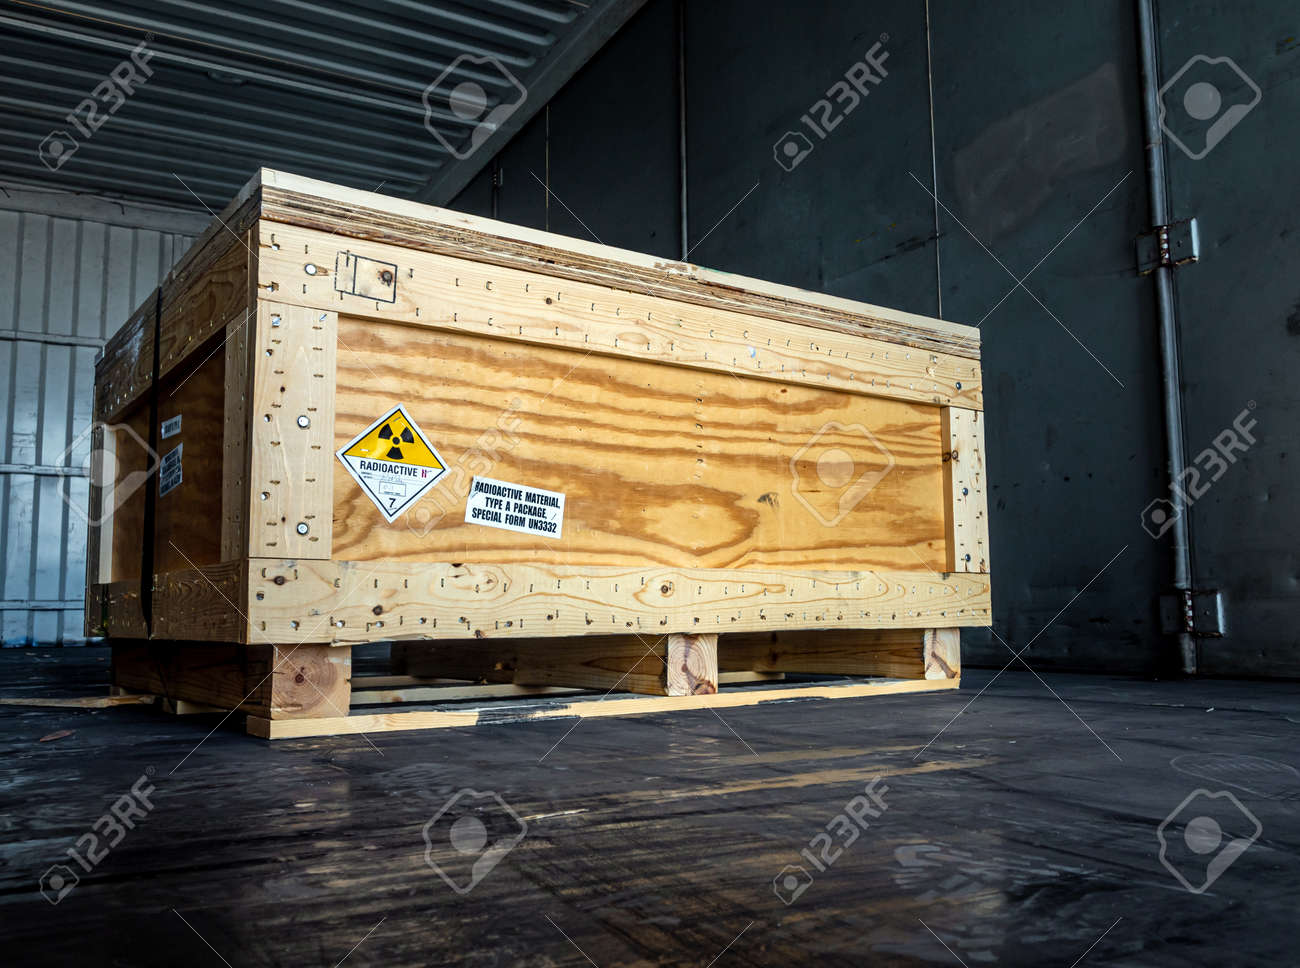 Radiation warning sign on the Hazardous materials transport label Class 7 at the wooden box Type A standard package in the container of transport truck - 167262978